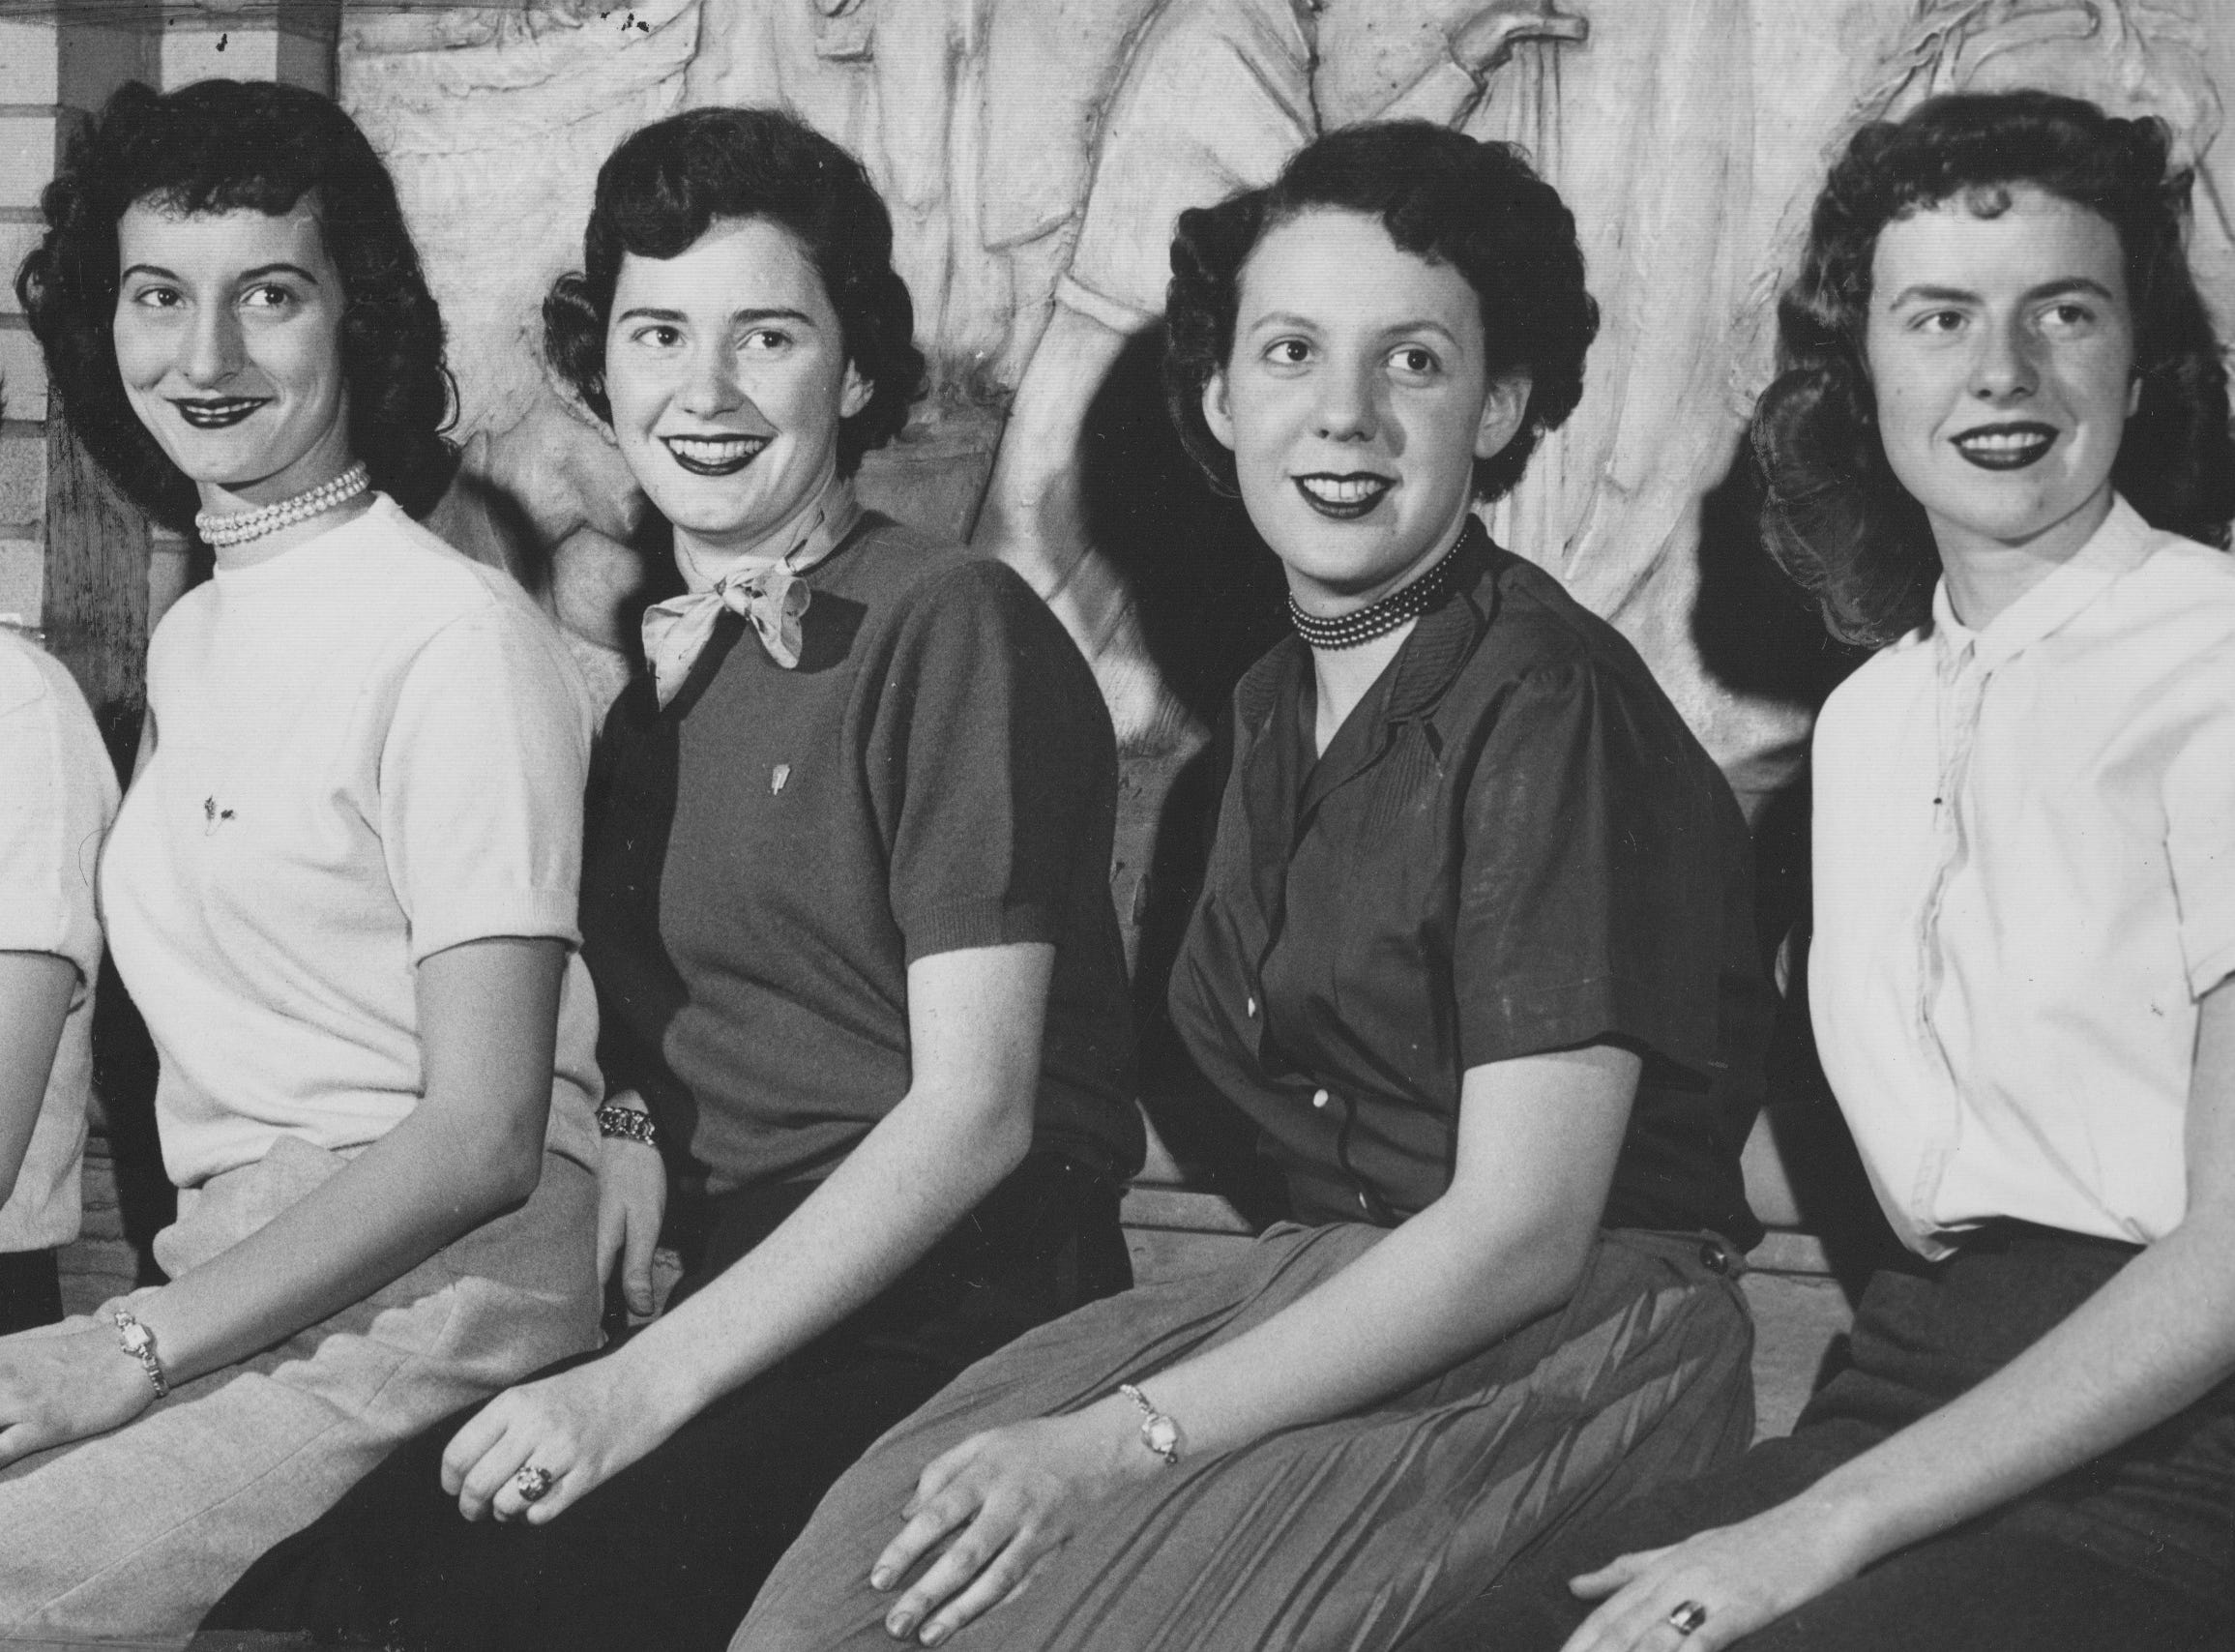 (l to r) Rosemary Reinbold, Marilyn Reynolds, Ruthann Crippen, Norma Inabnit and Gloria Alycoff, all finalists for the senior show whirl dance at Washington High School in 1954.